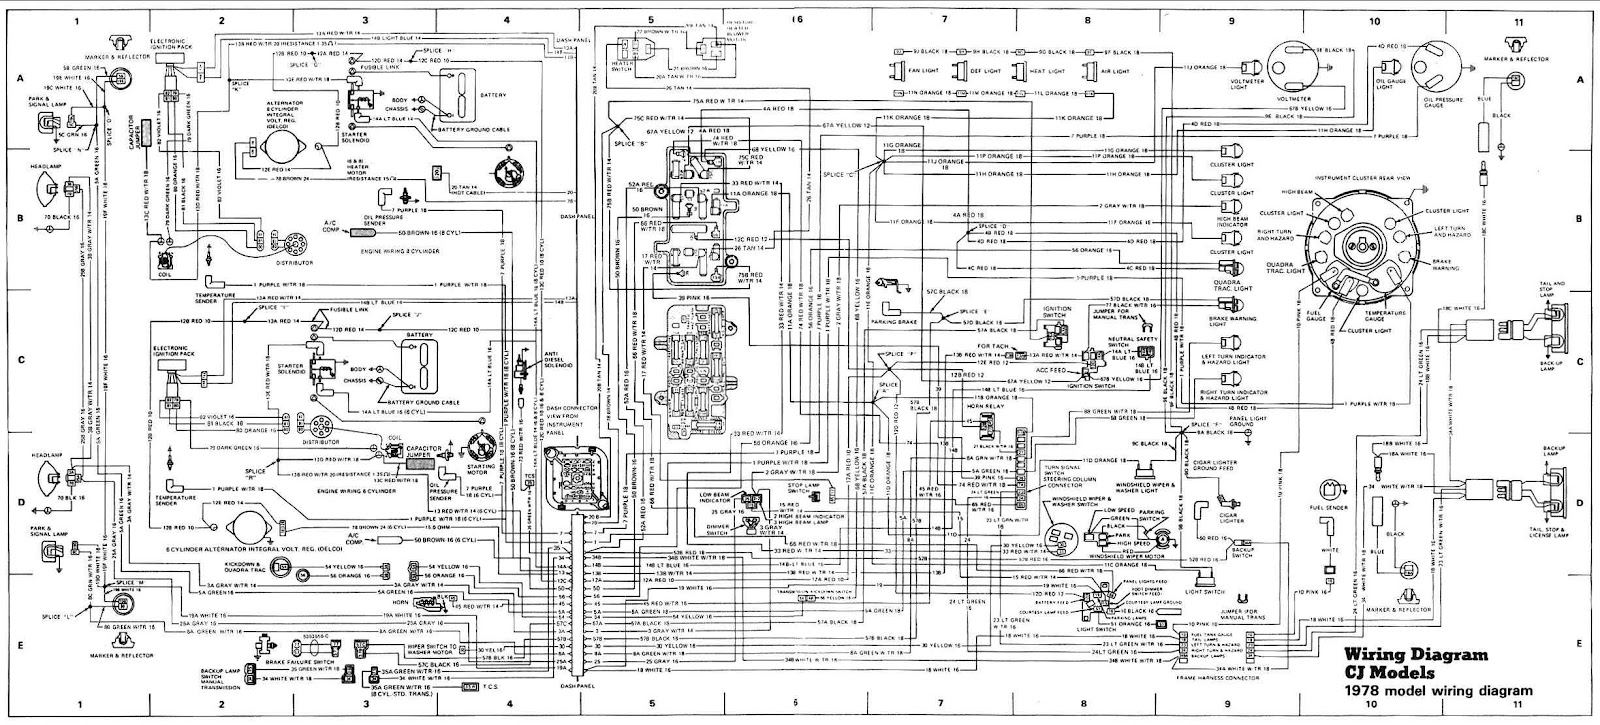 jeep cj models 1978 complete electrical wiring diagram 93 jeep wrangler tail light wiring diagram 1993 [ 1600 x 725 Pixel ]